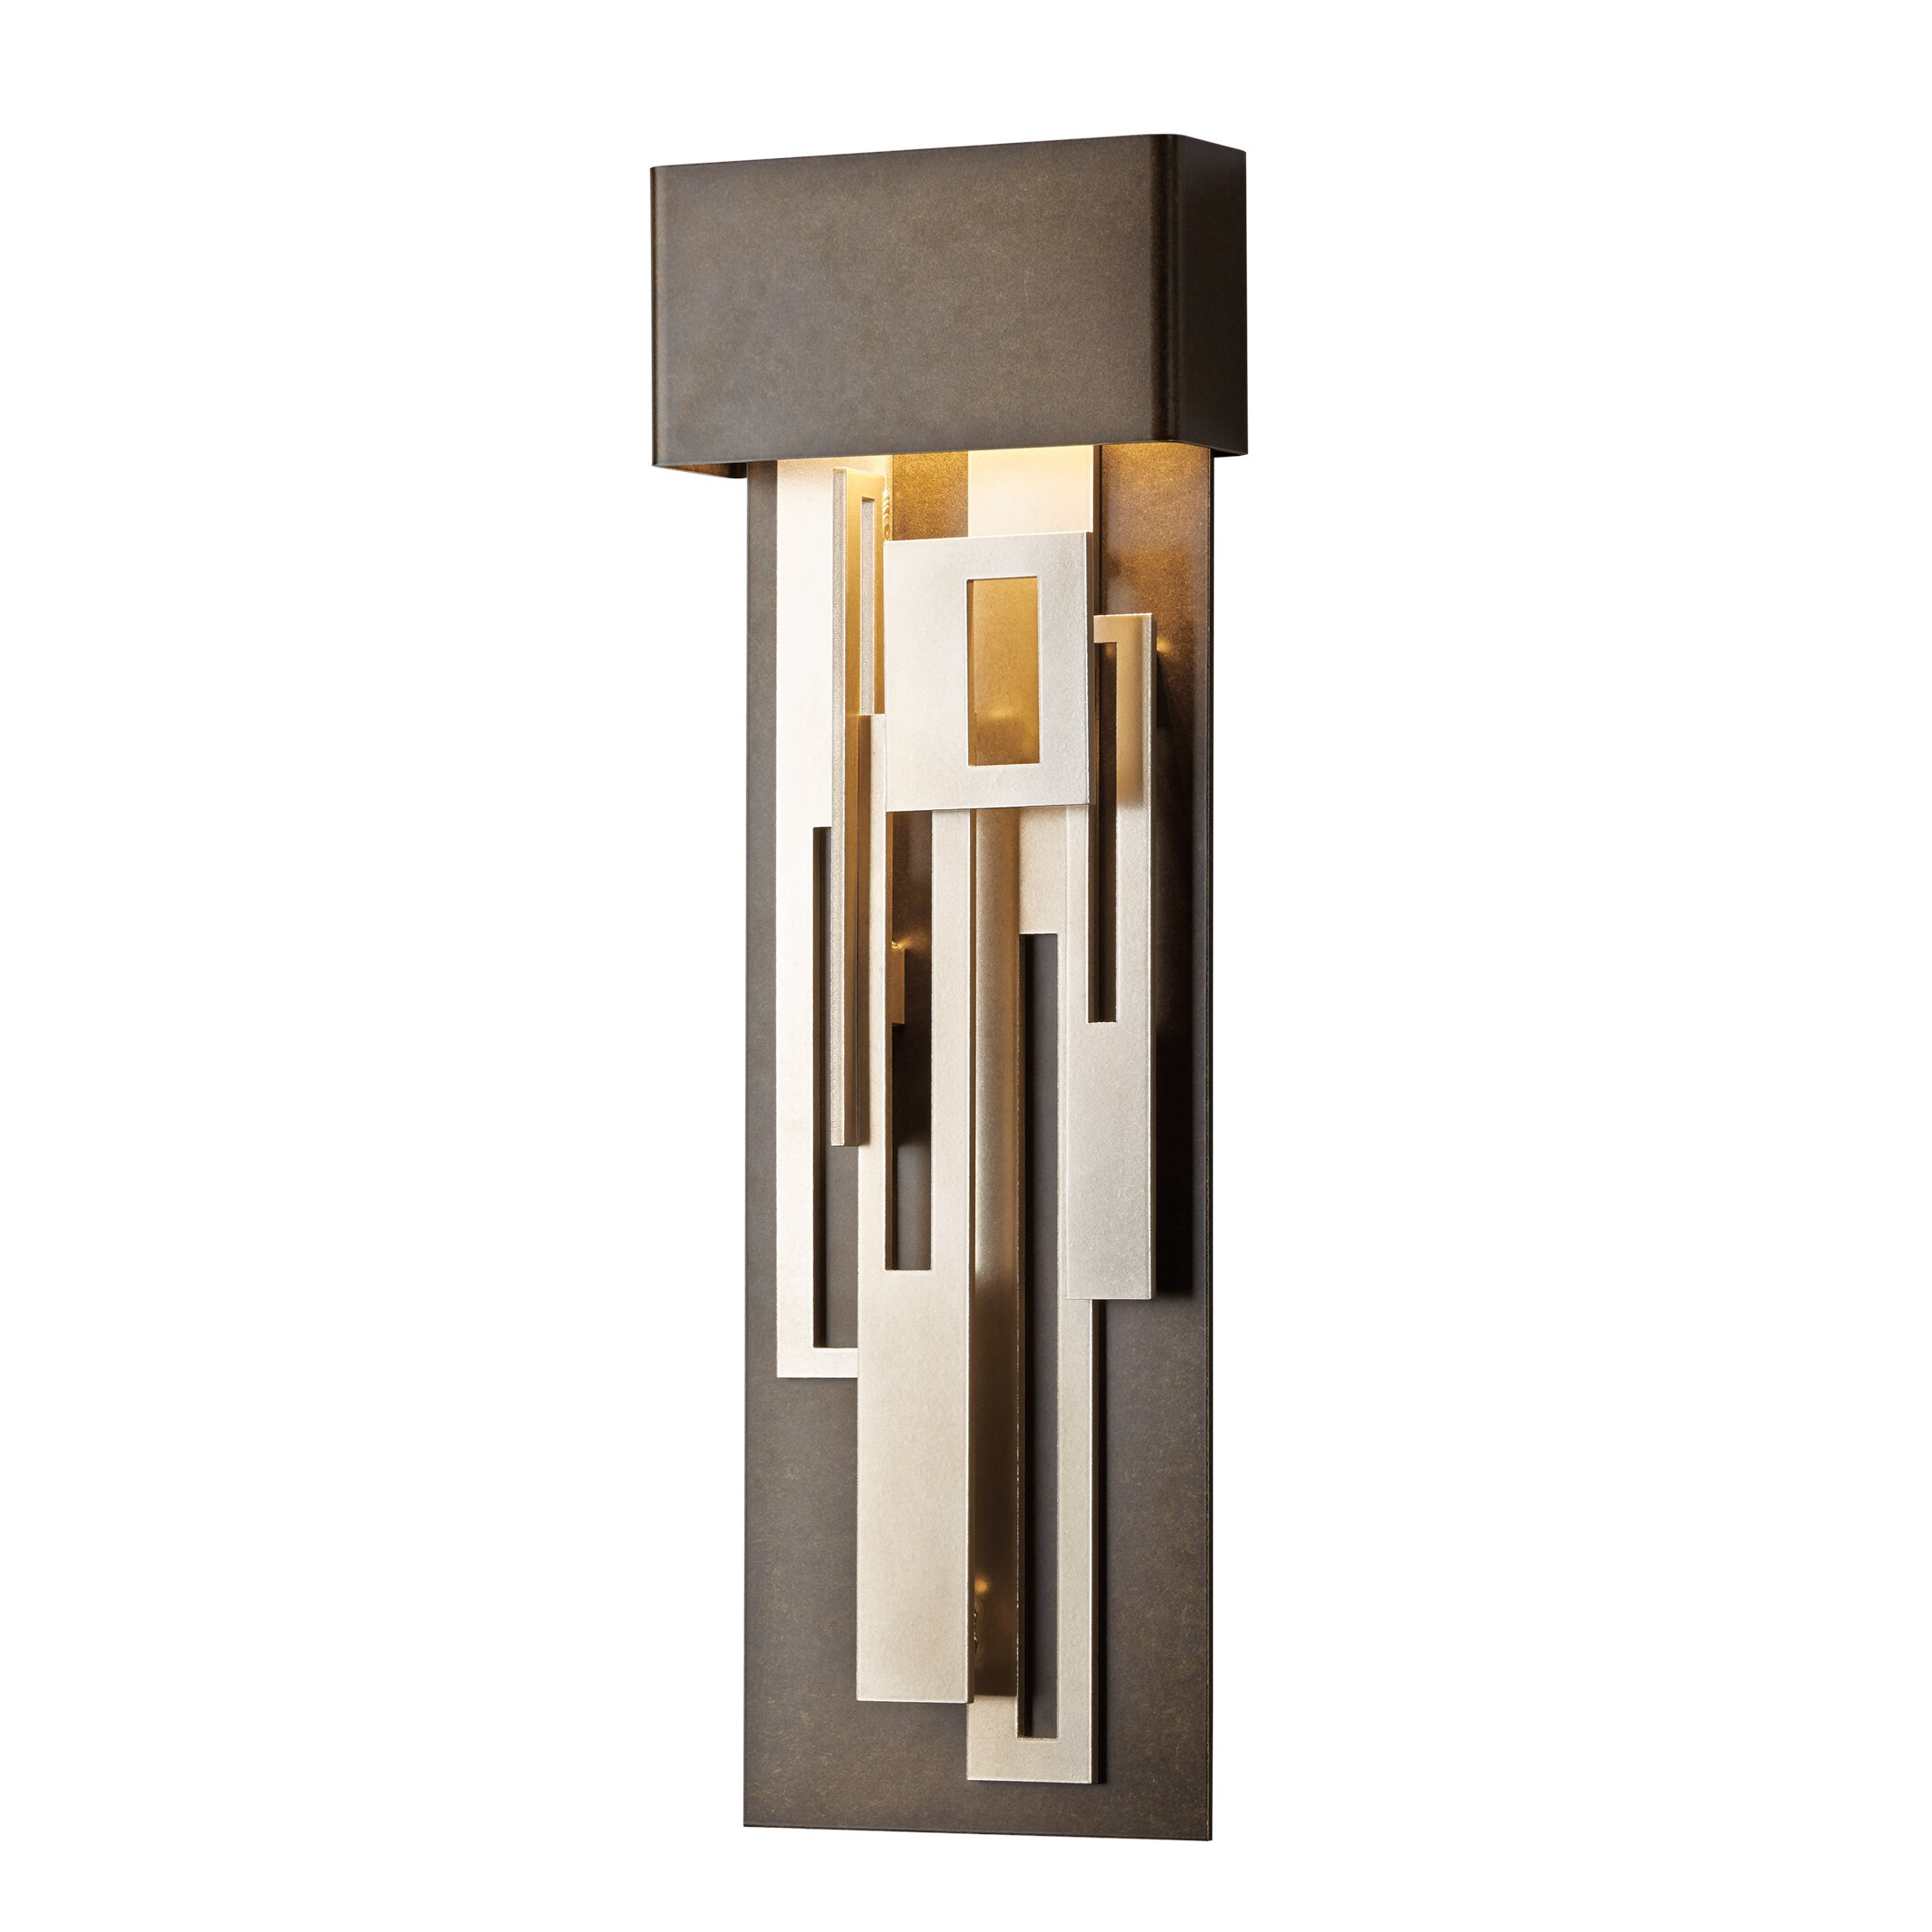 Hubbardton Forge Collage LED Wall Sconce